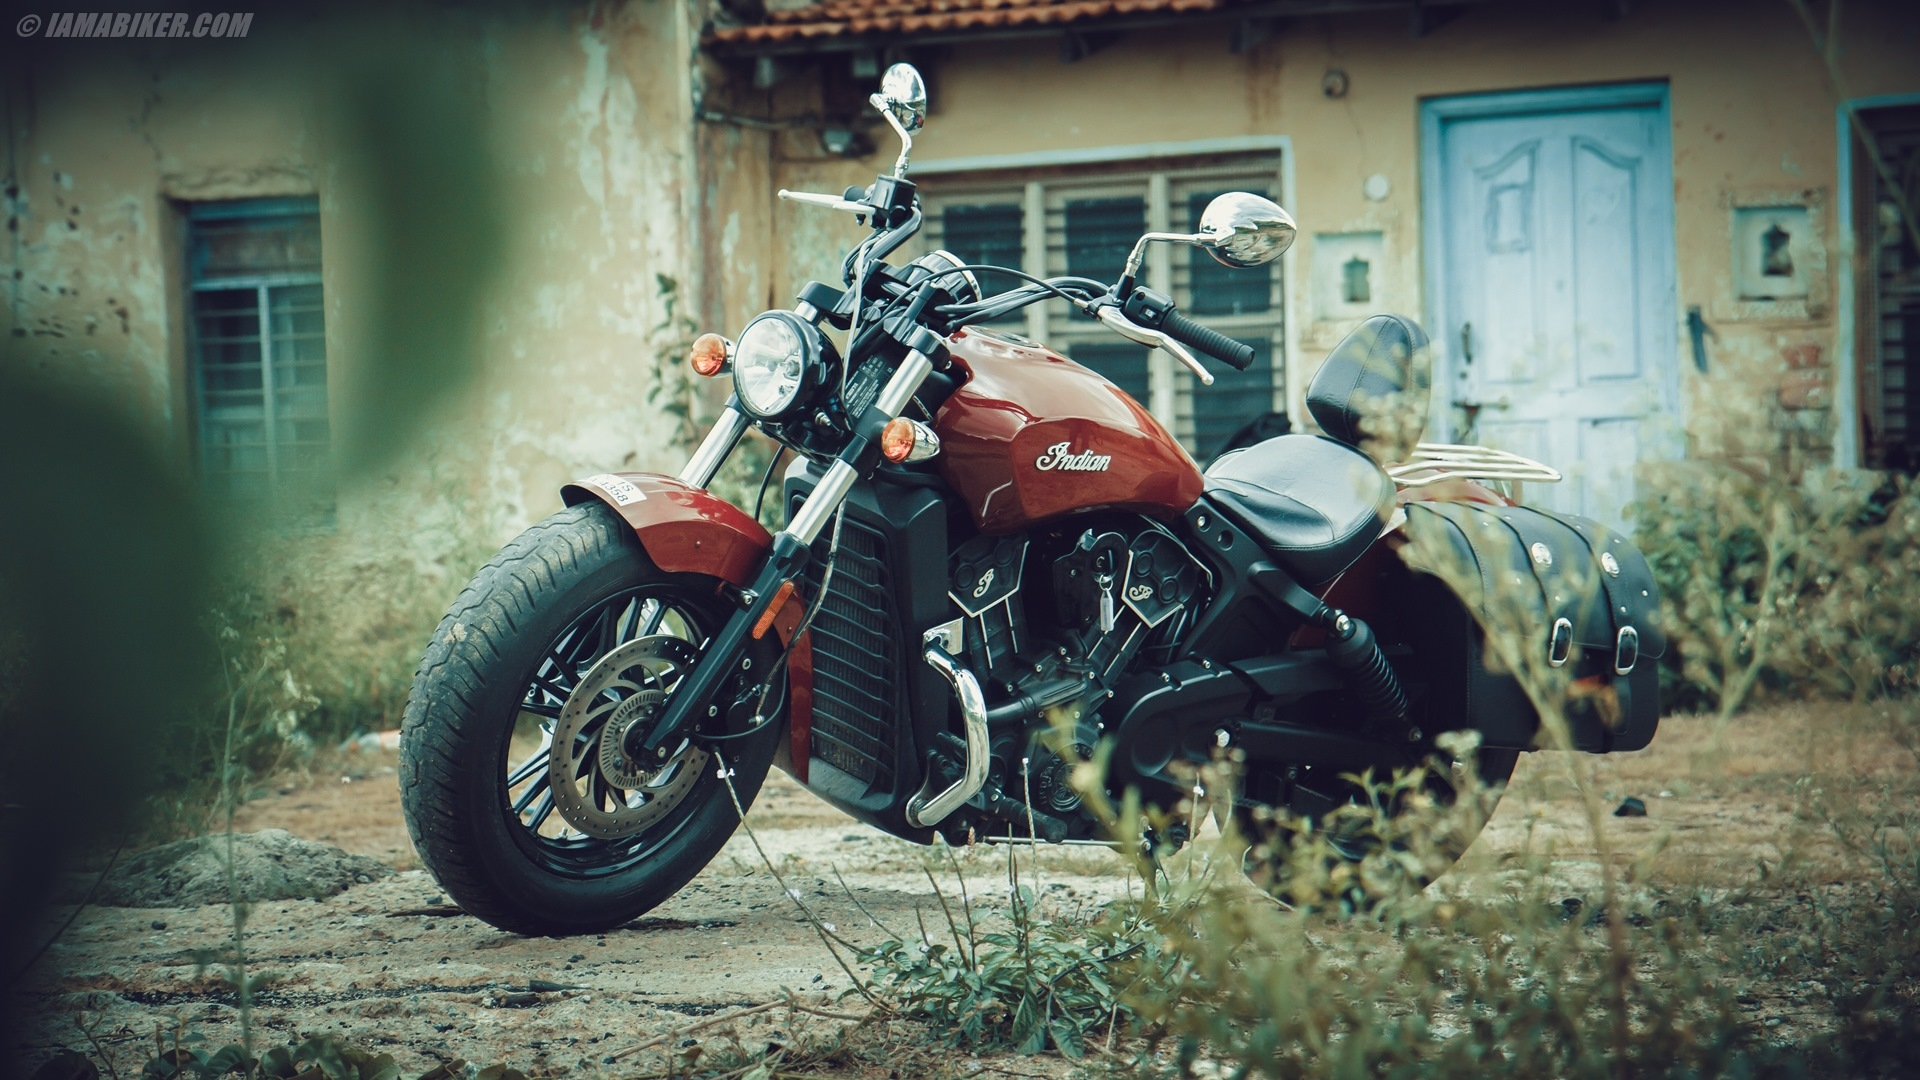 Indian Scout Sixty Hd Wallpapers Iamabiker Everything